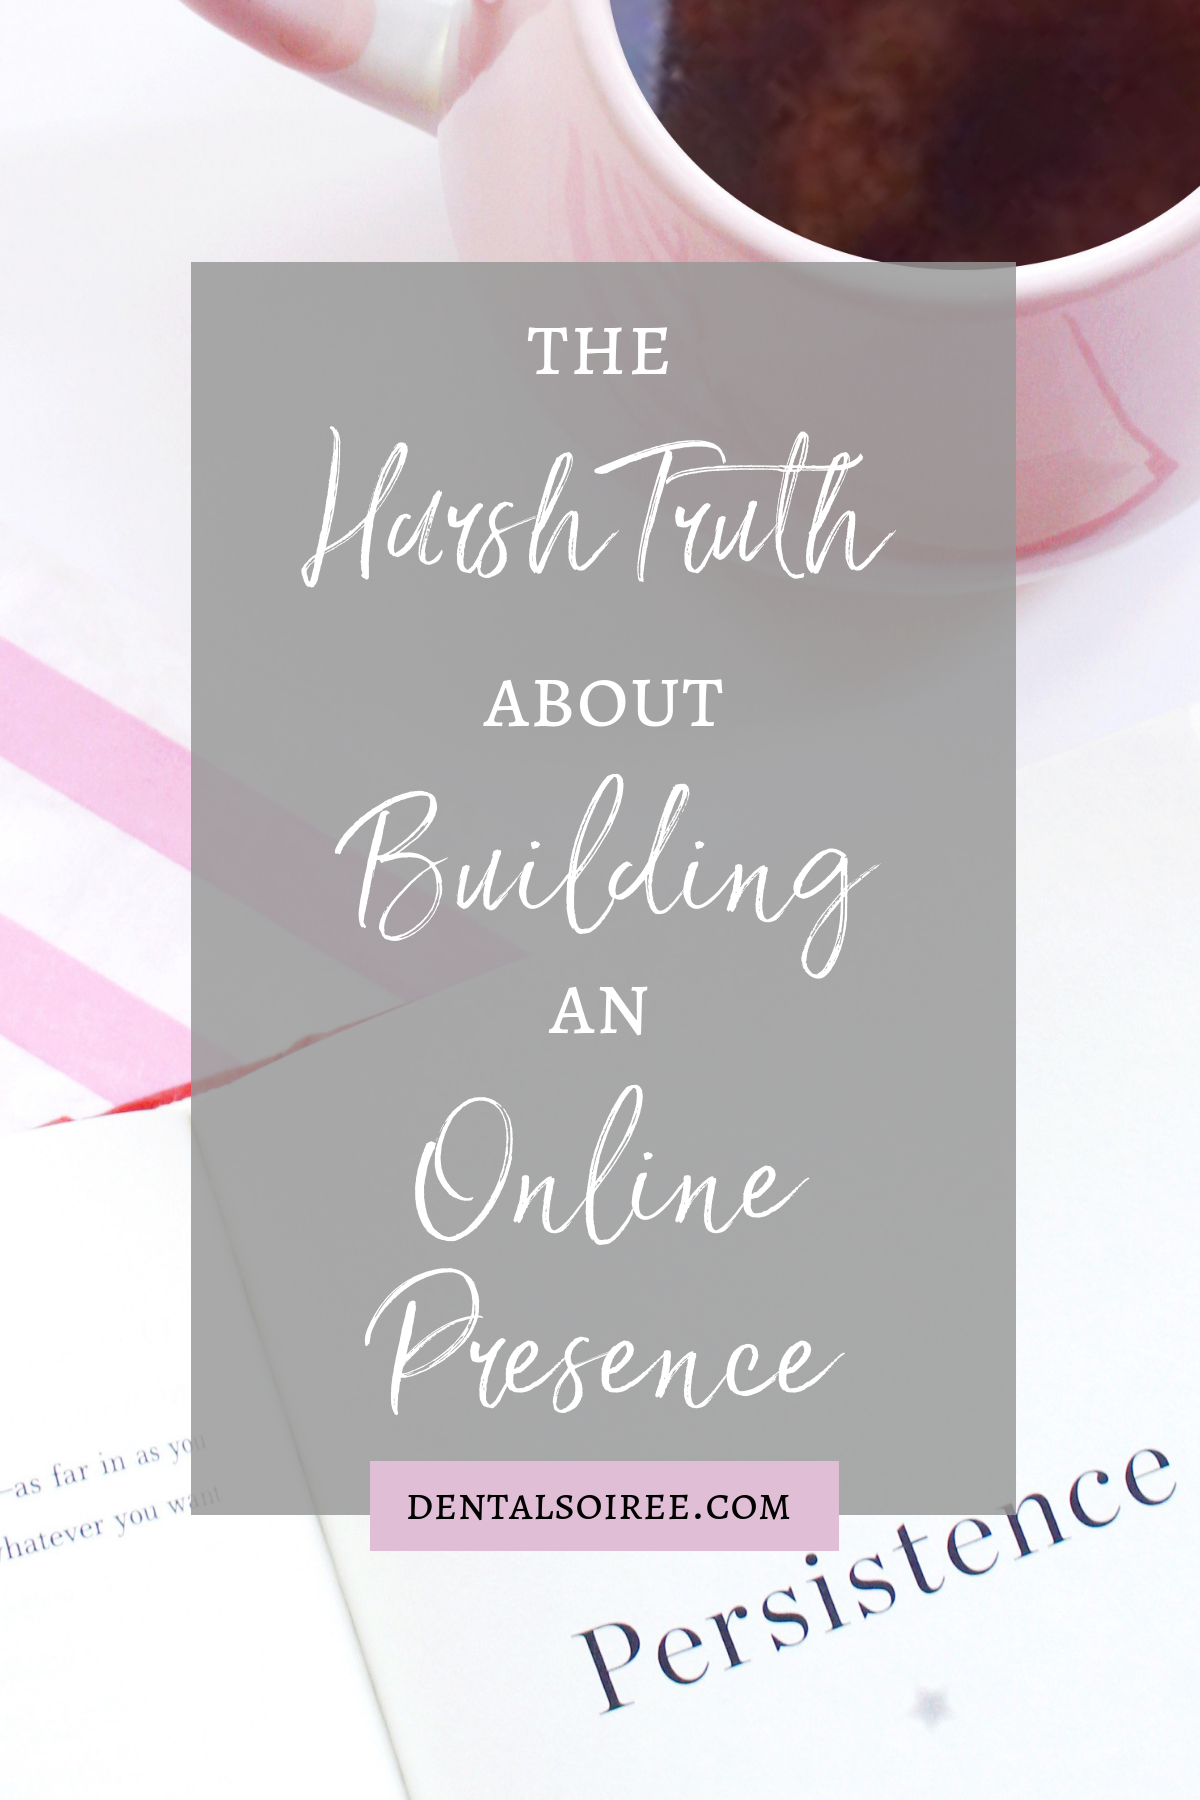 The Harsh Truth About Building an Online Presence